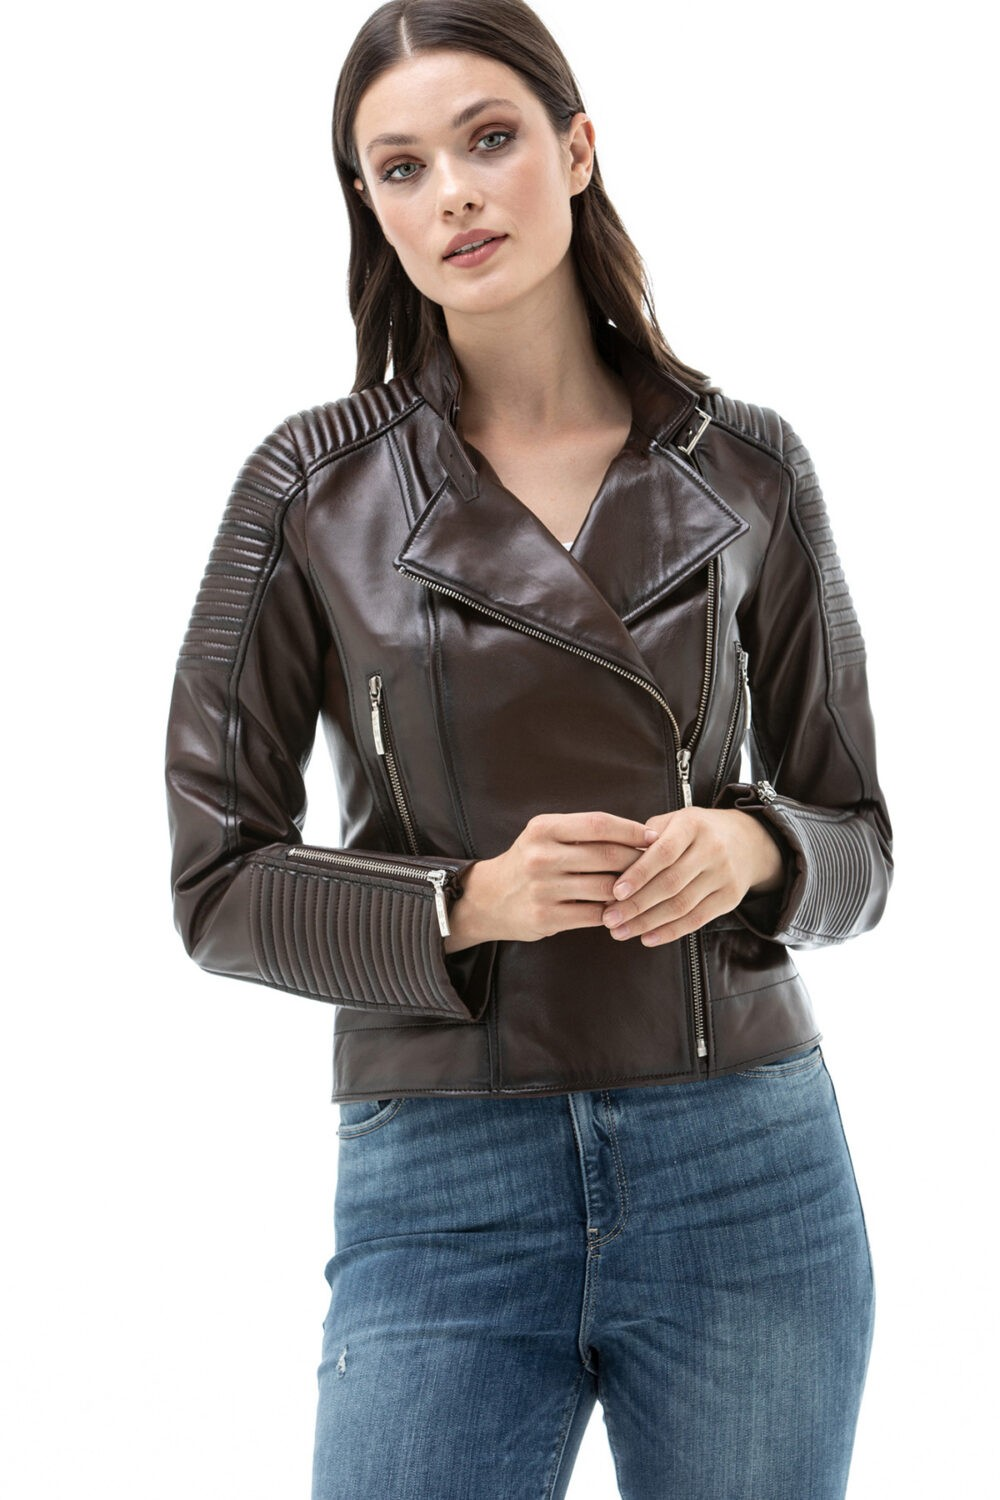 Real Leather Biker Jacket Womens